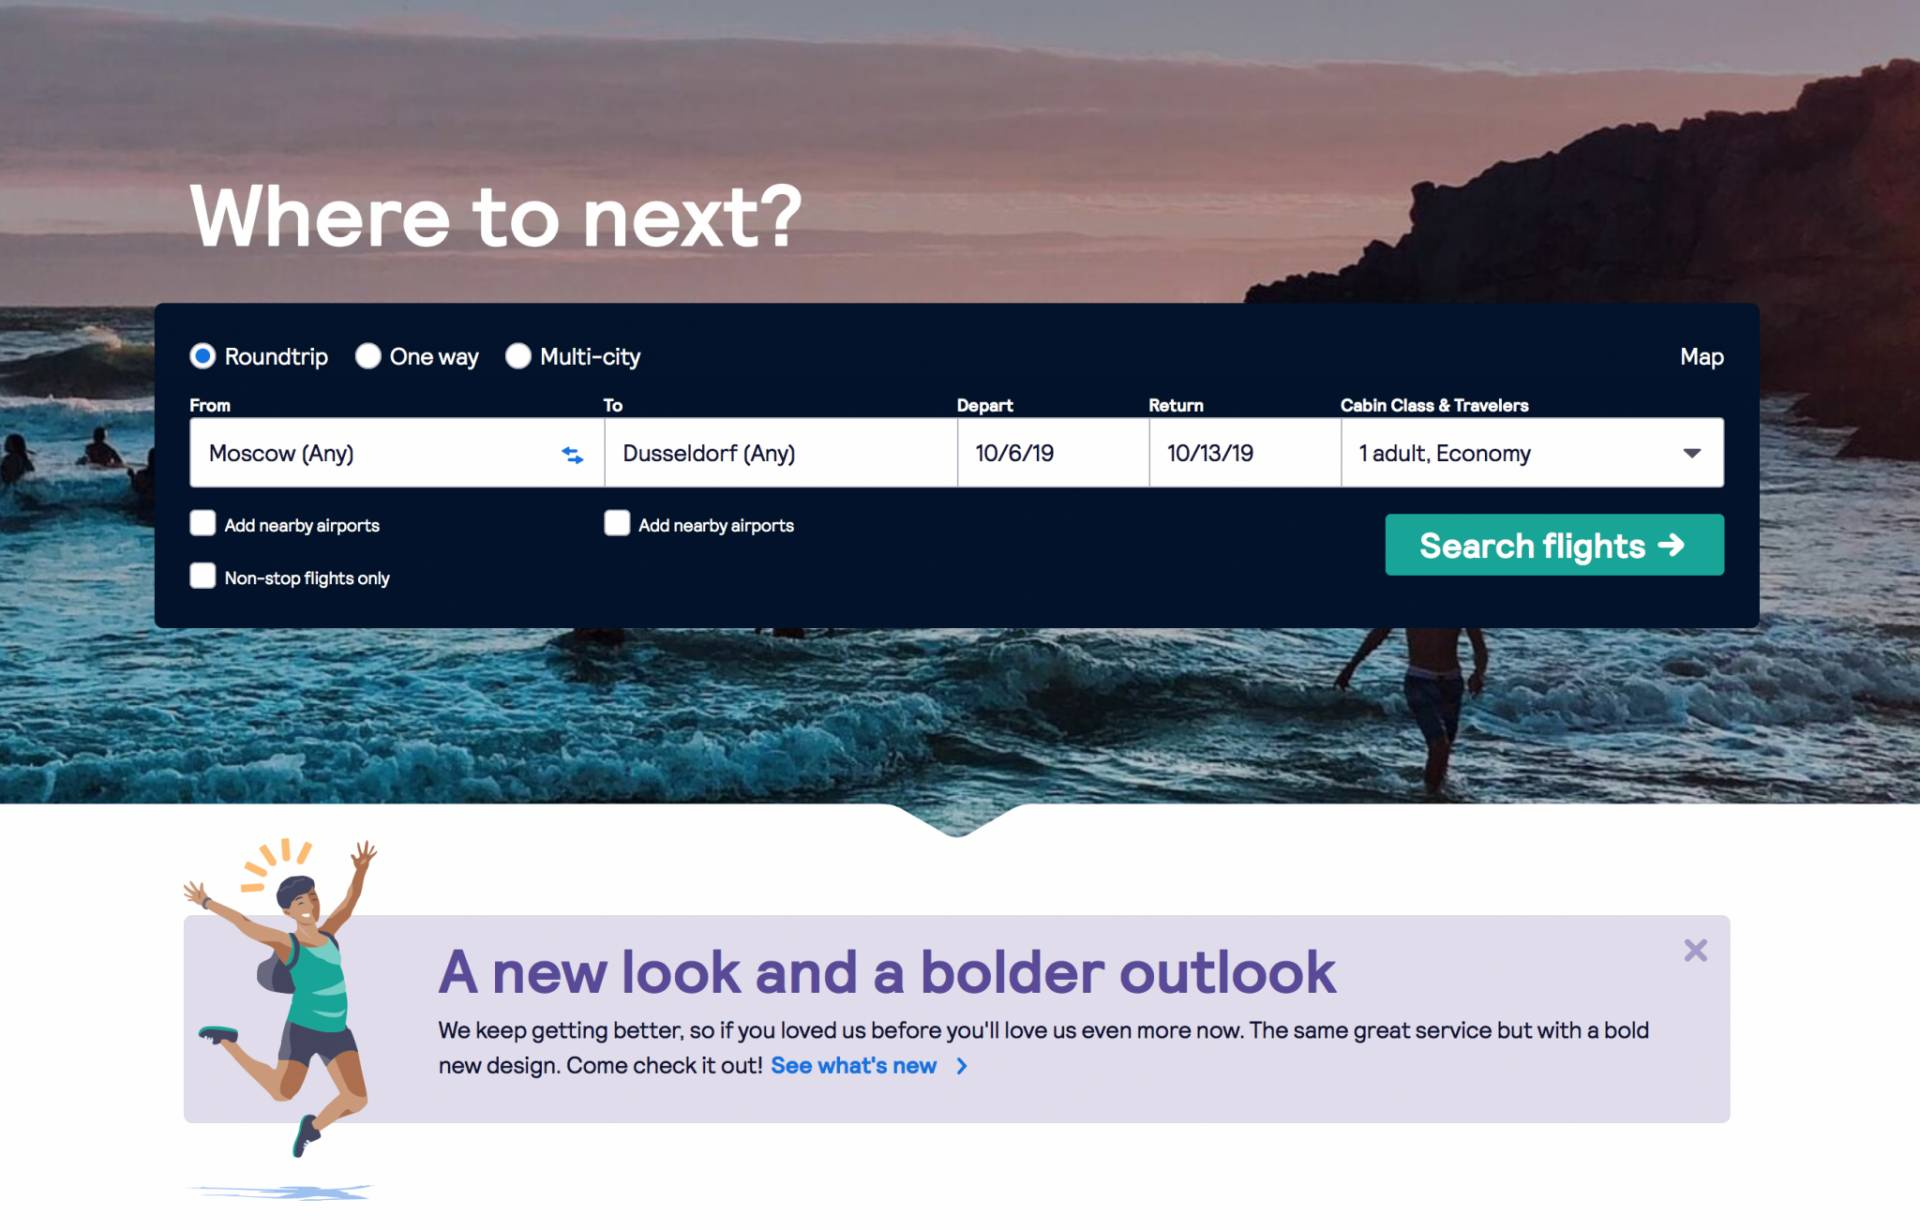 , Skyscanner introduced a new logo and corporate identity